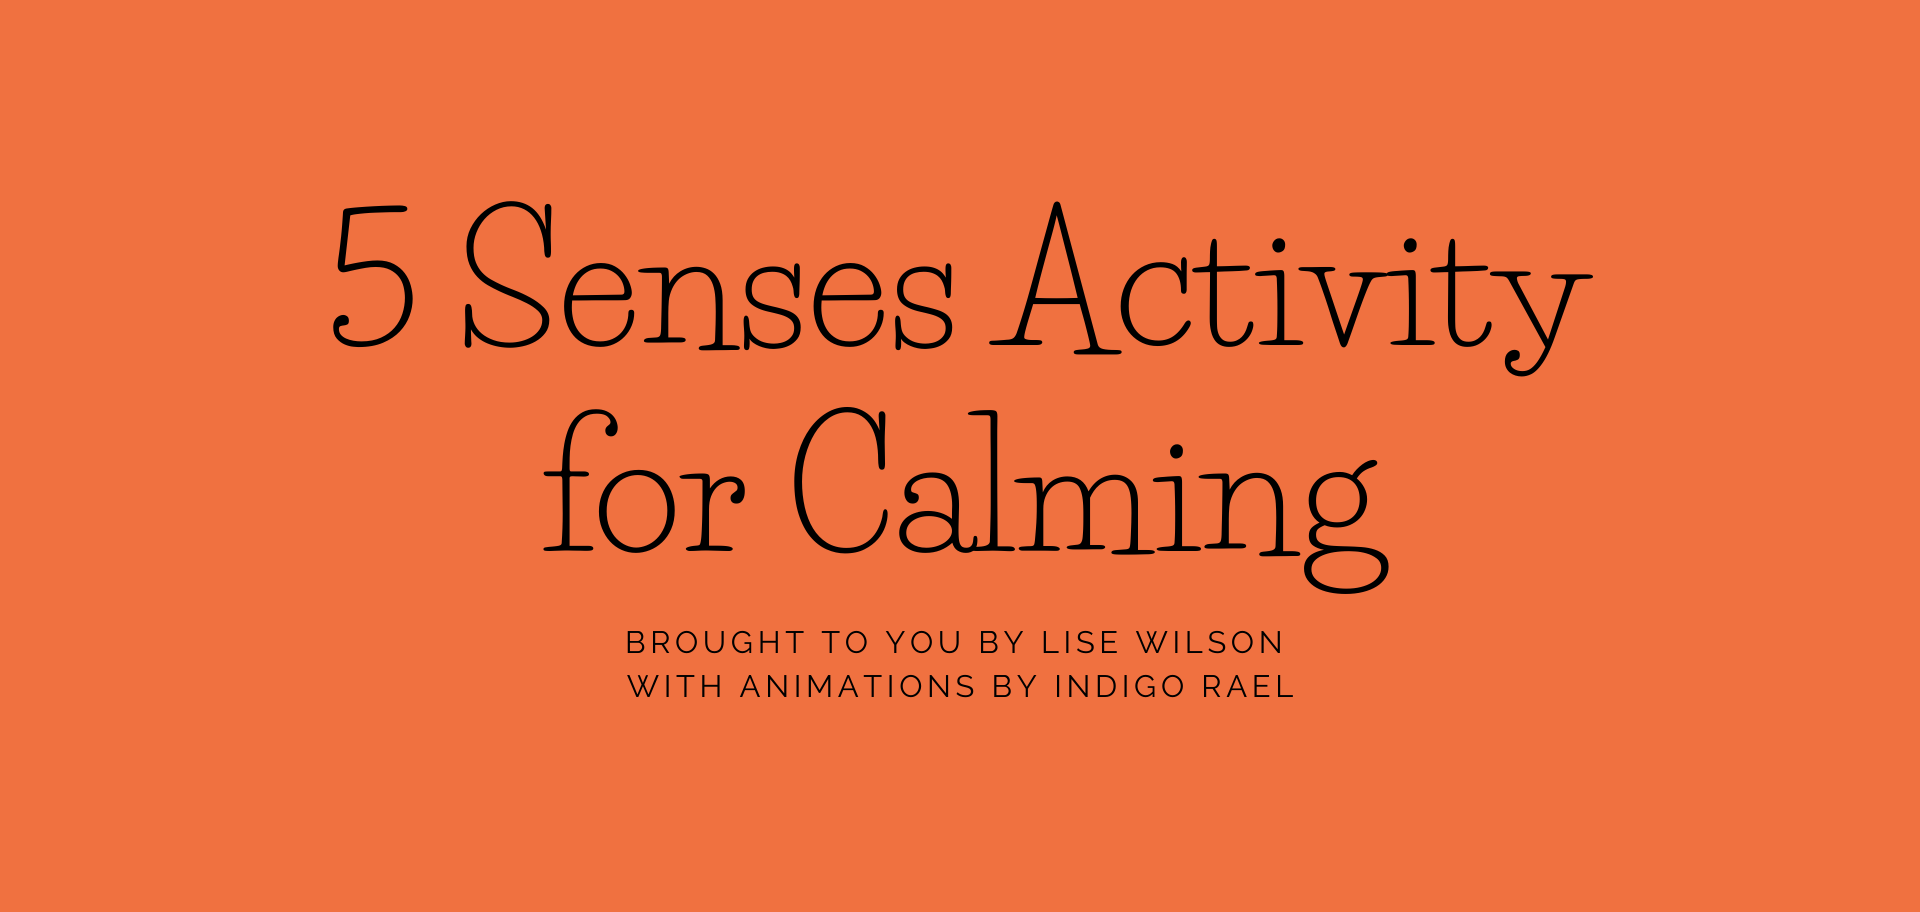 5 Senses Activity for Calming